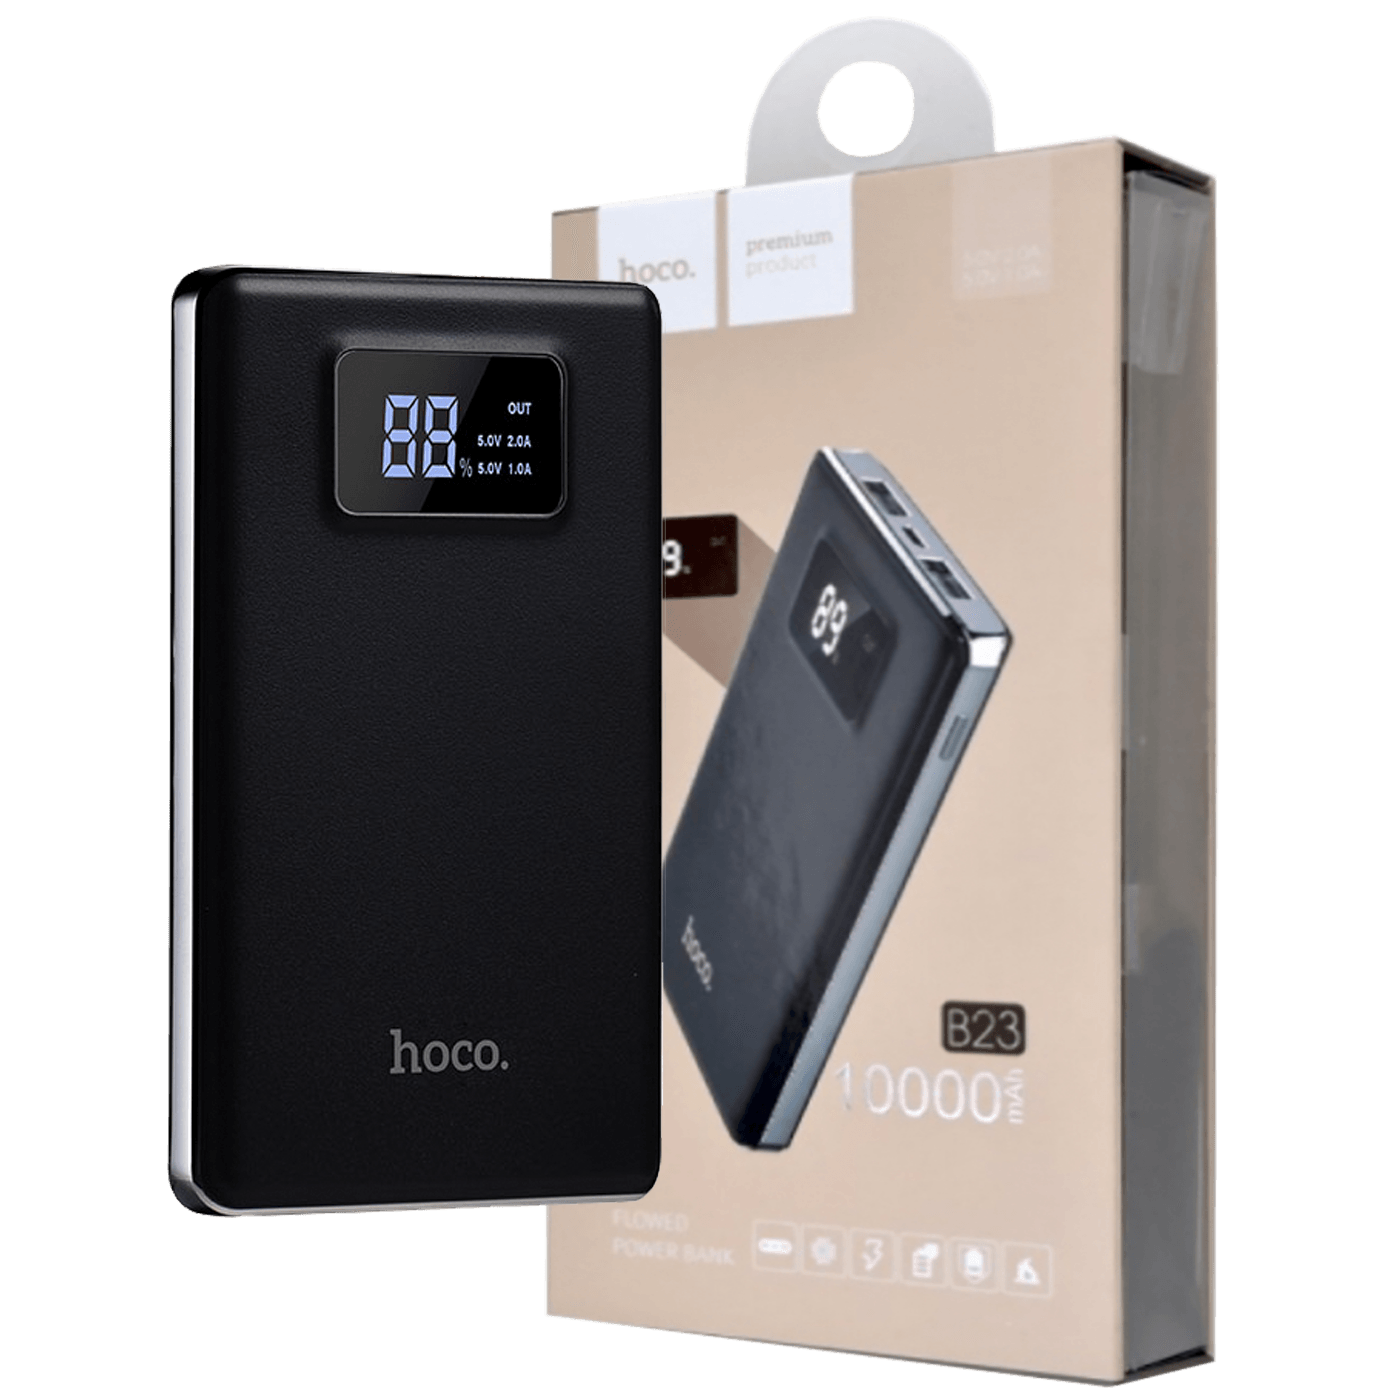 hoco. - B23 Flowed Power Bank